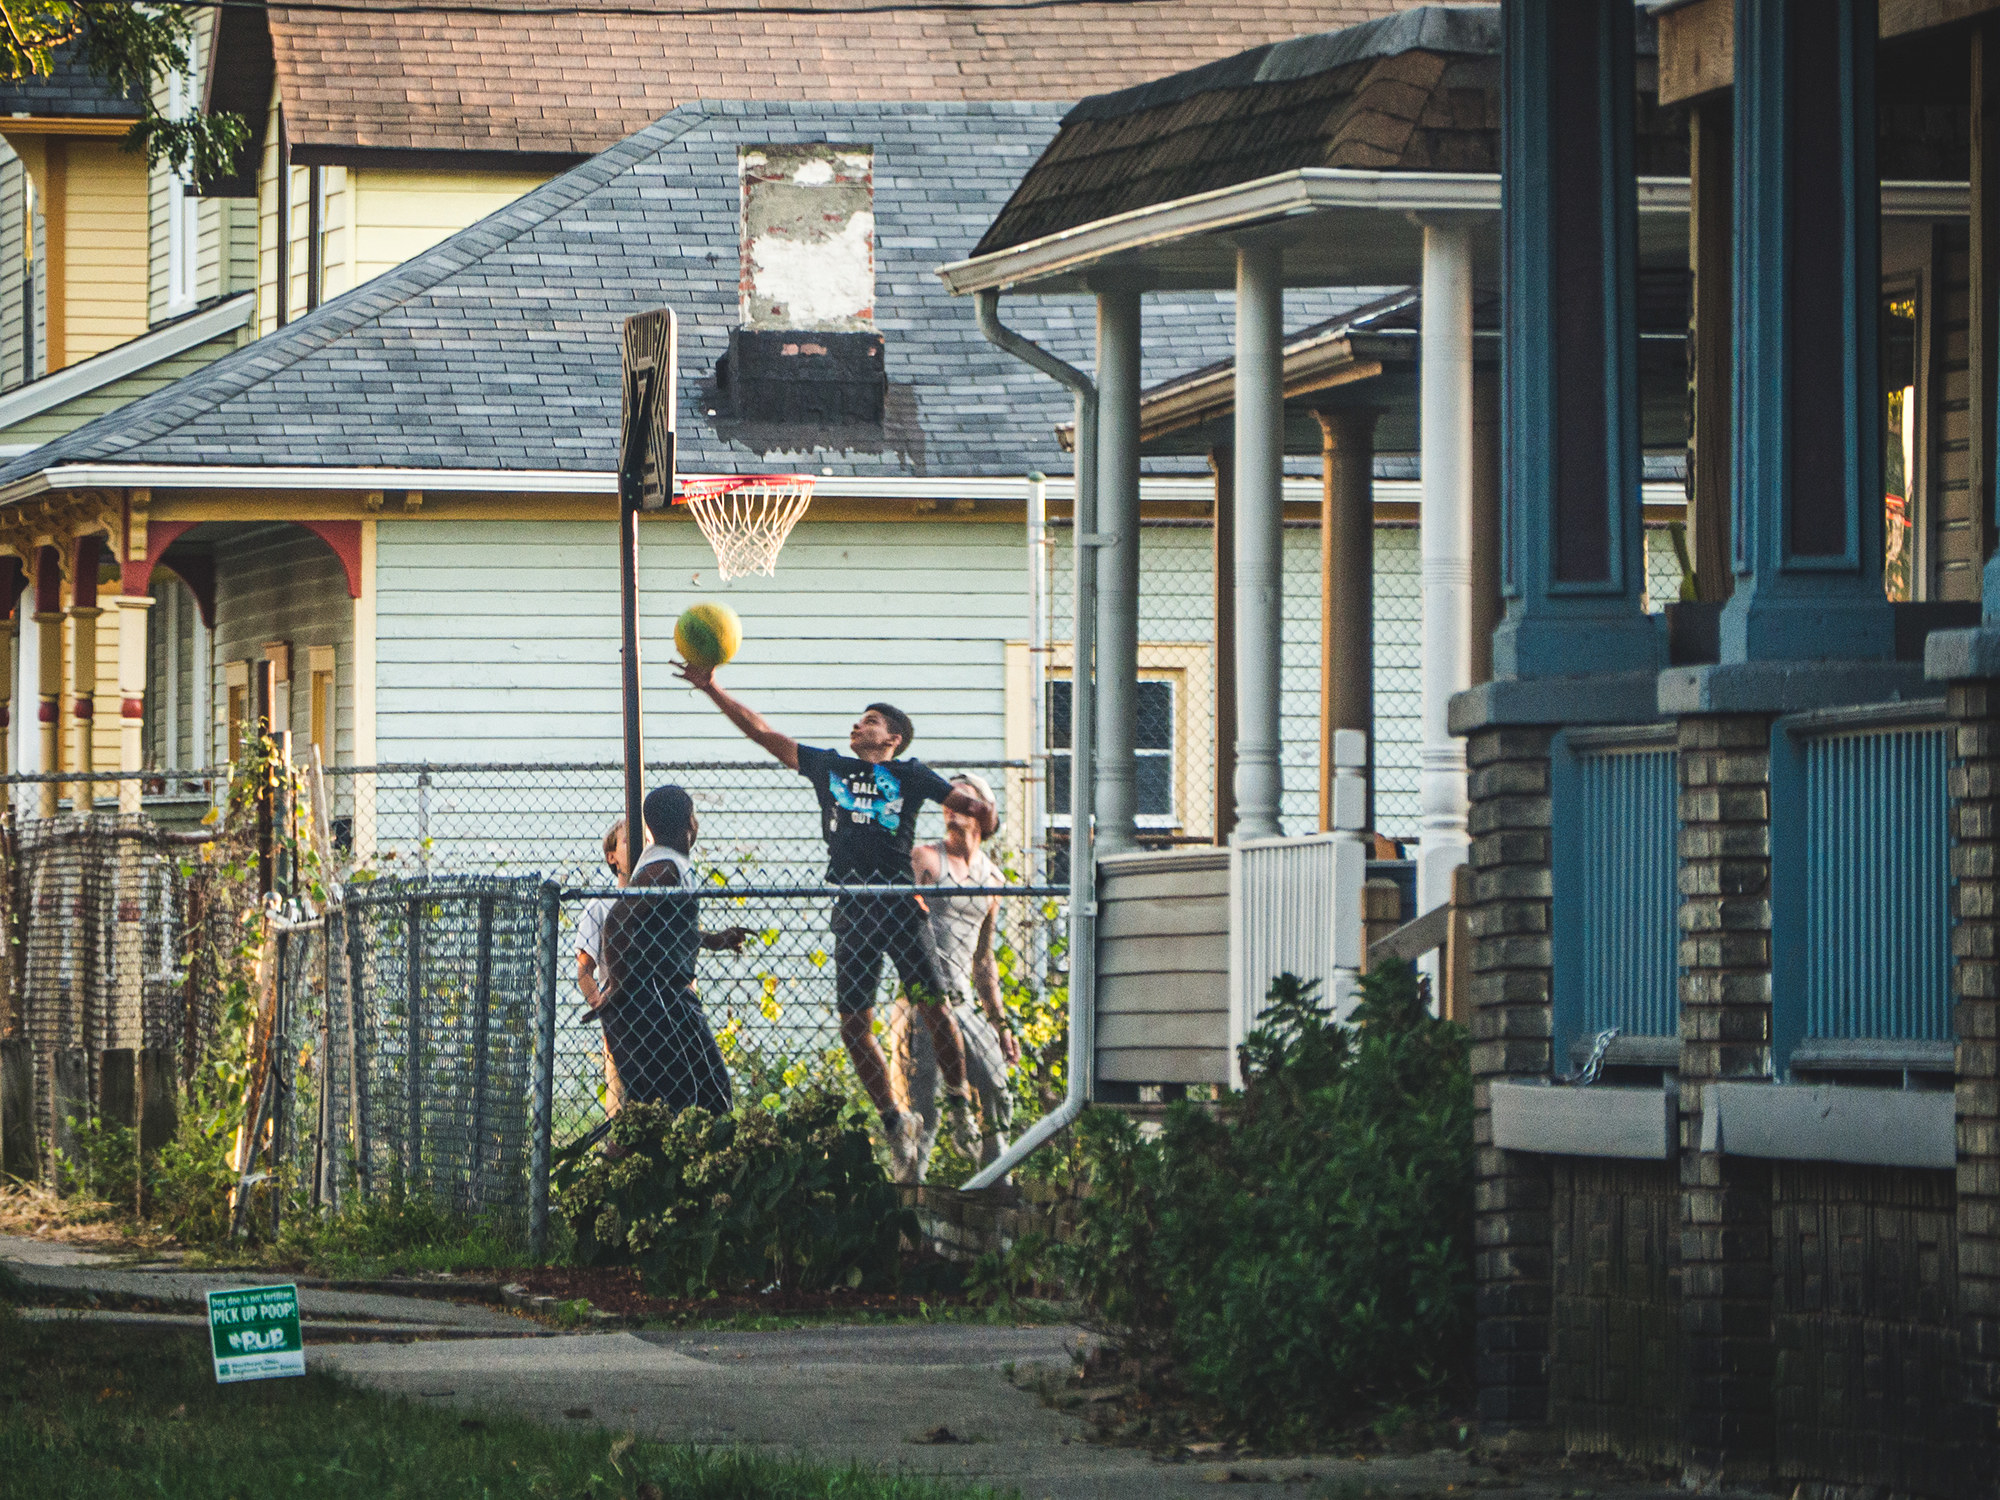 Boys playing basketball in a backyard